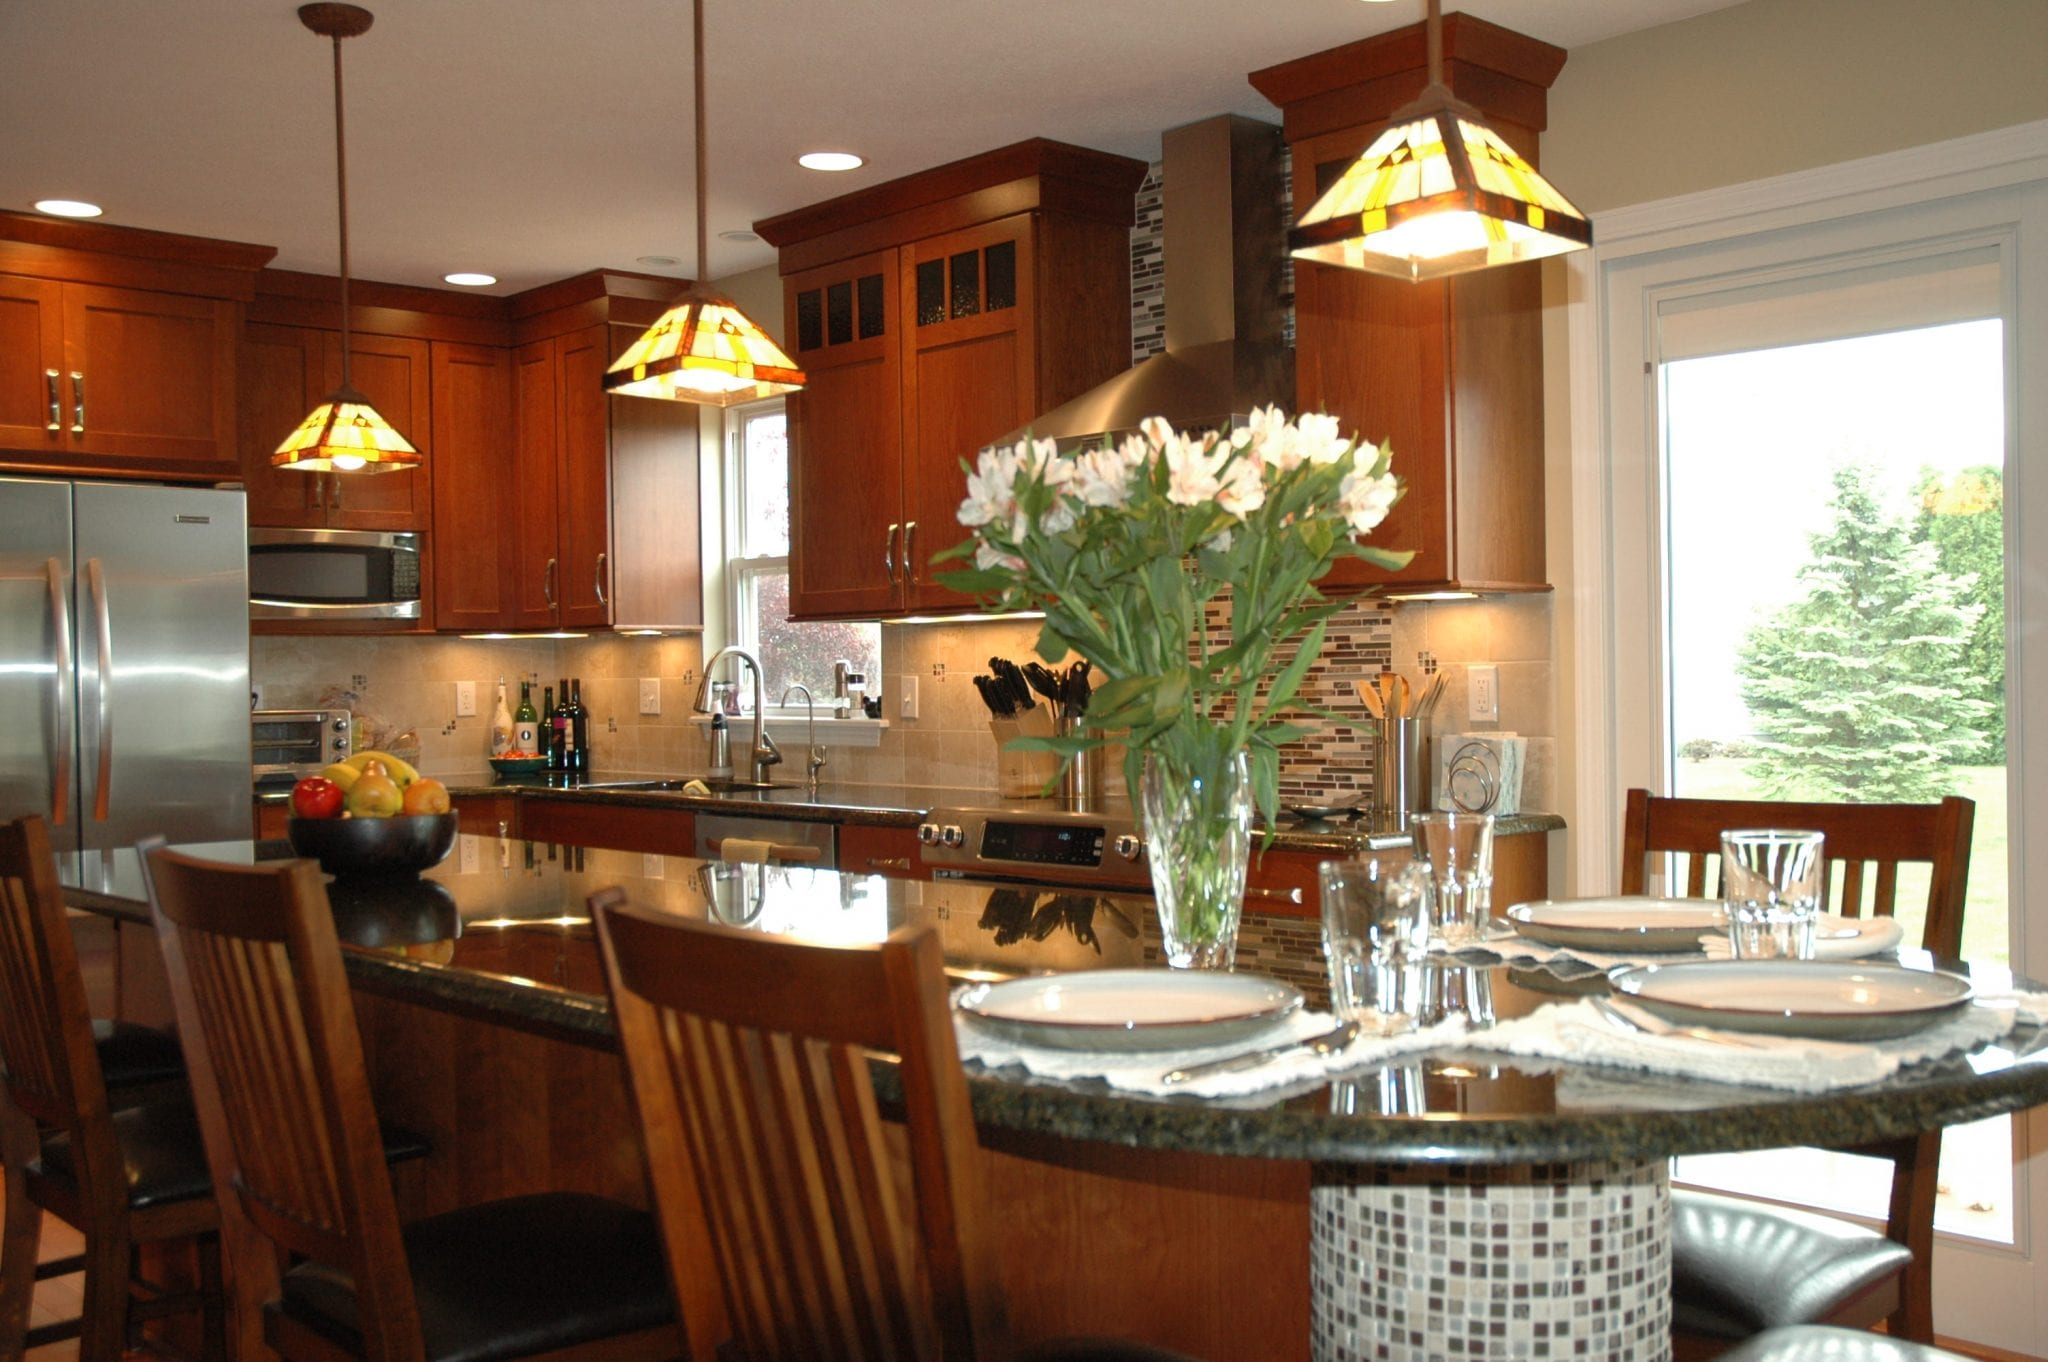 michigan kitchen bath remodeling visit our showroom mcdaniels